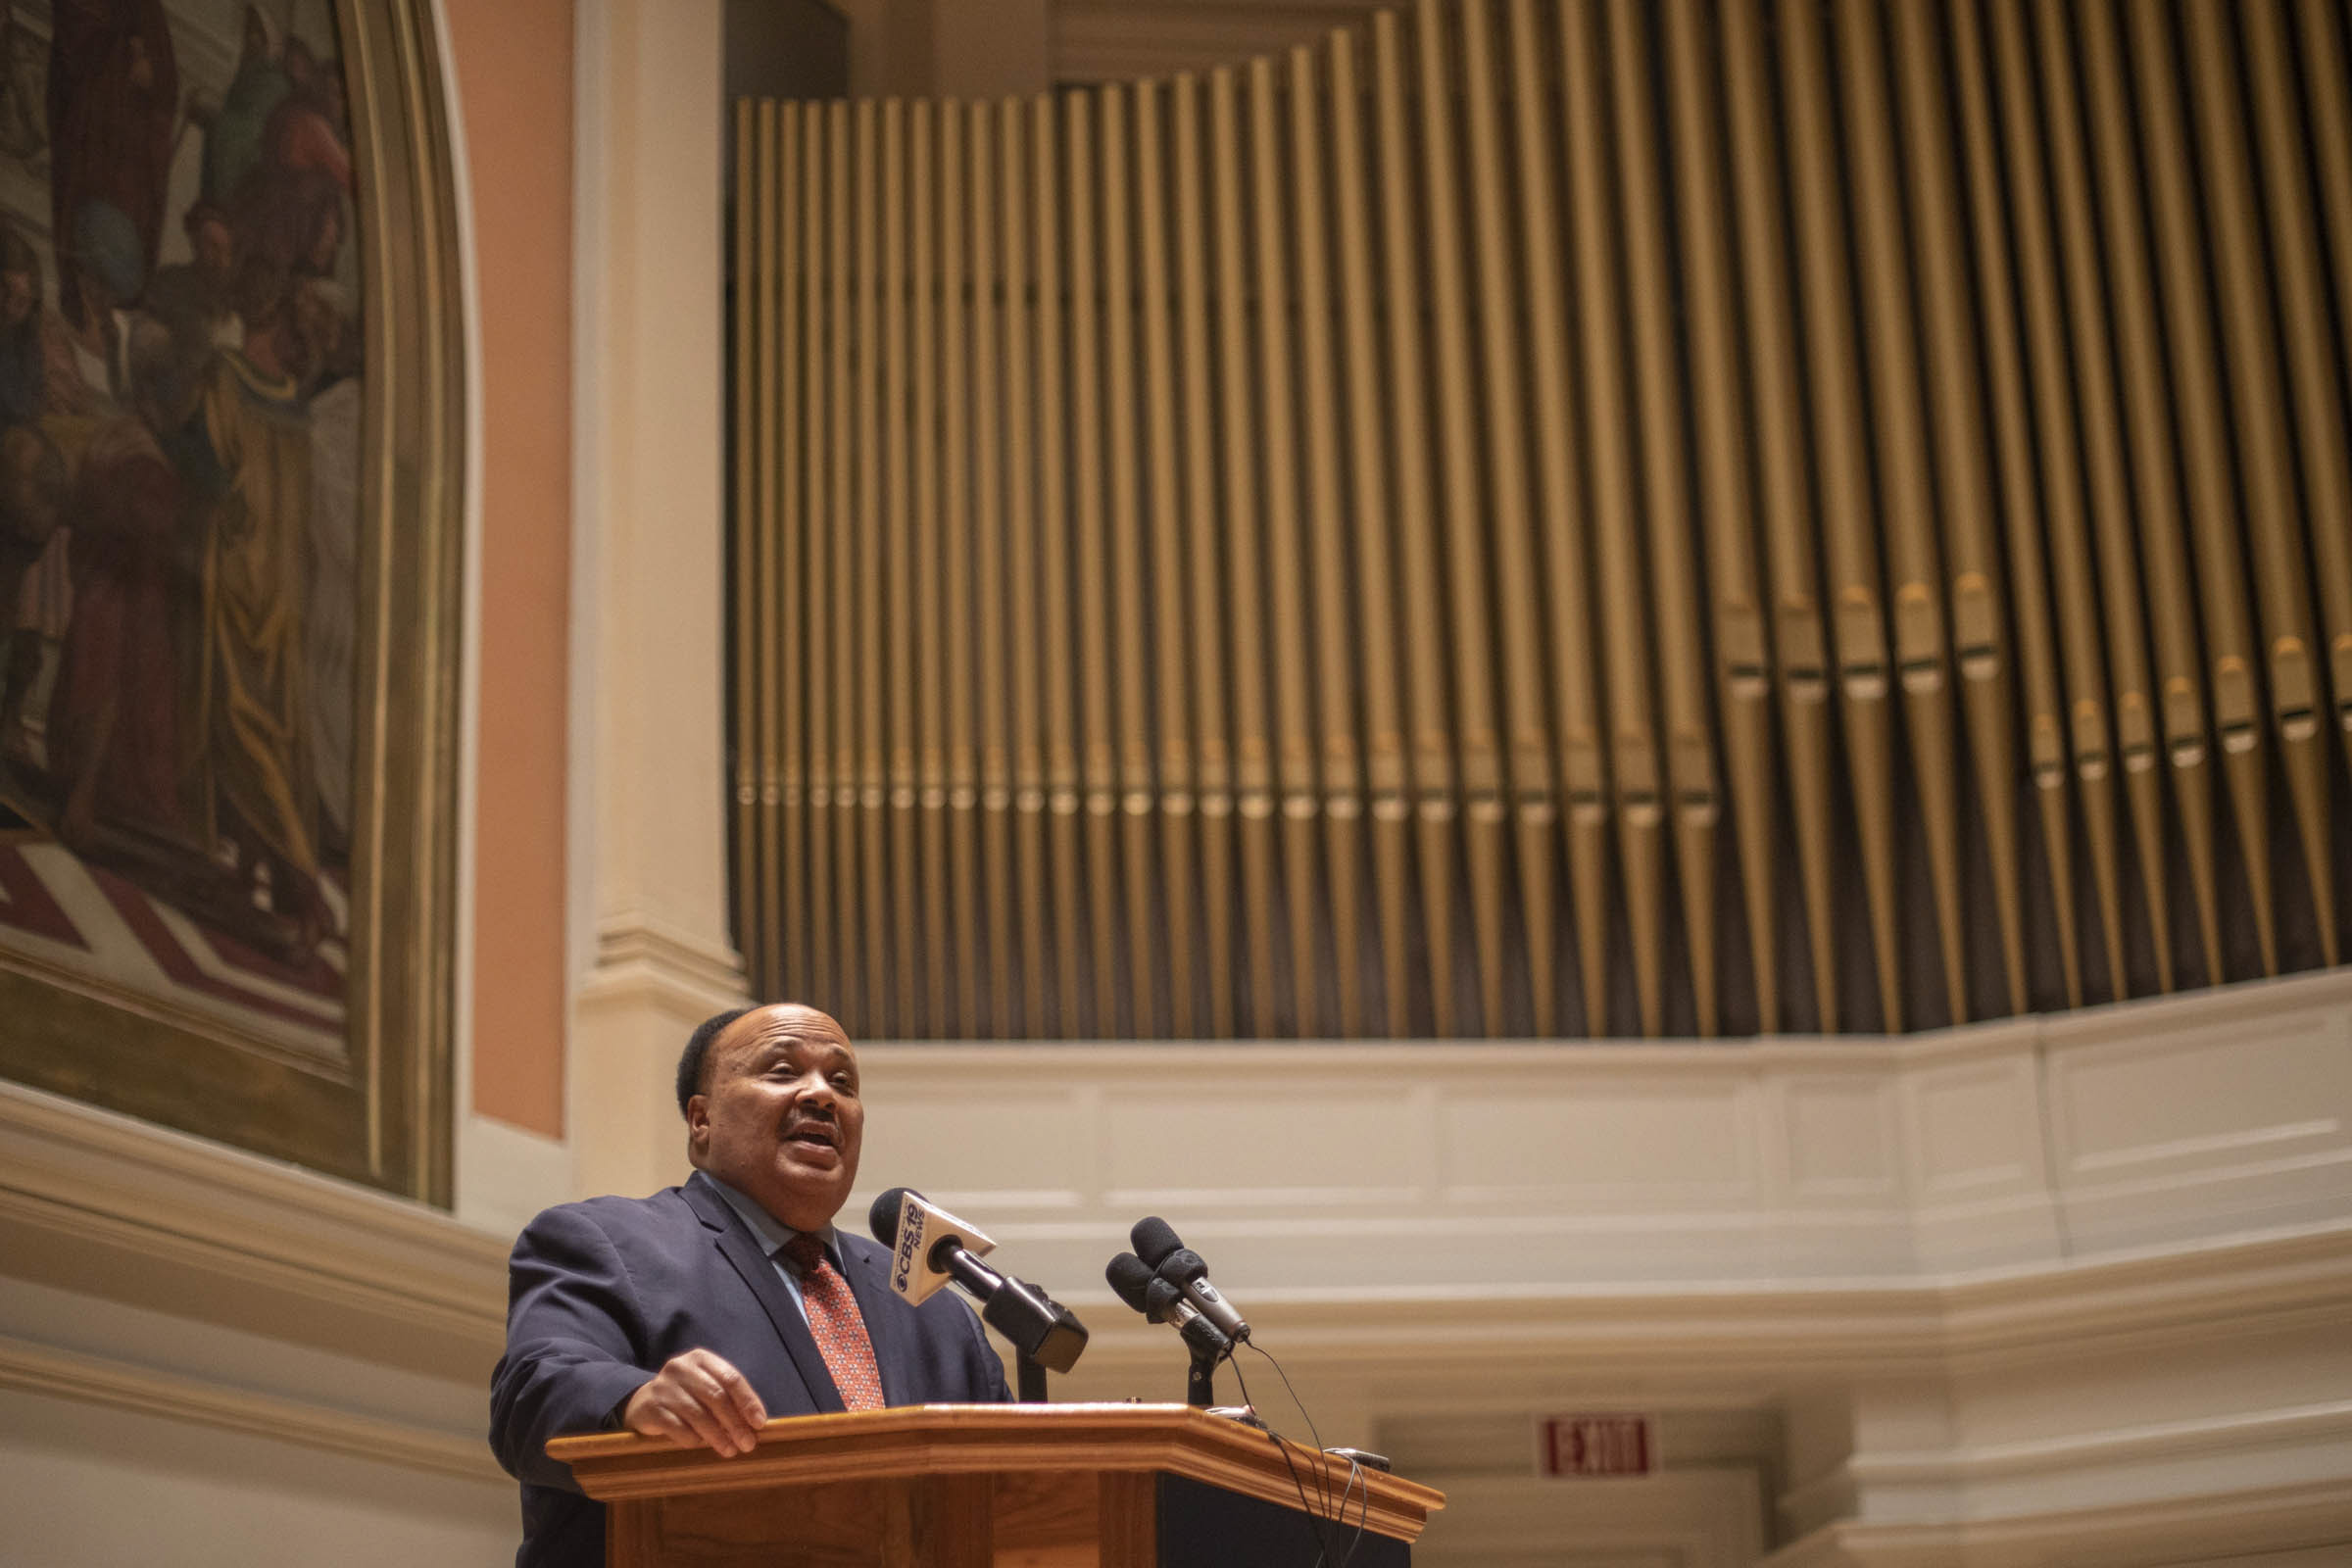 Martin Luther King III spoke in Old Cabell Hall – the same site of his father's historic speech at UVA.